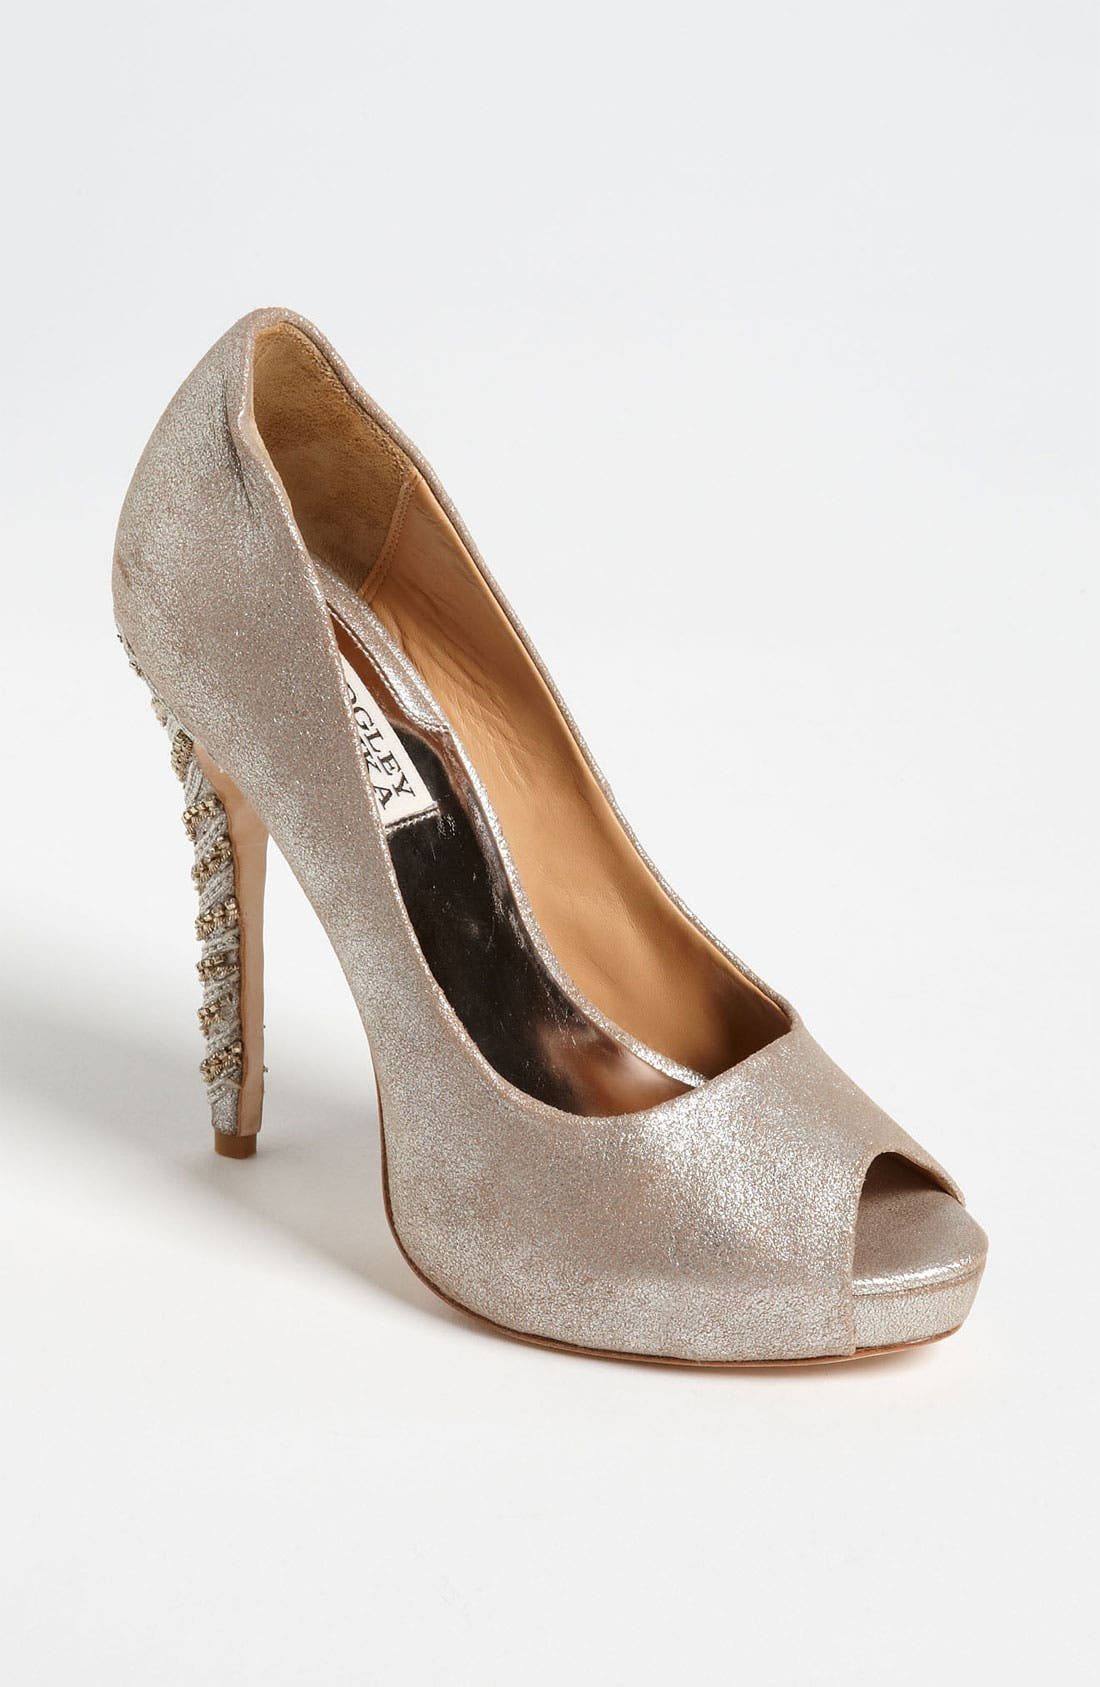 Alternate Image 1 Selected - Badgley Mischka 'Vixen' Pump